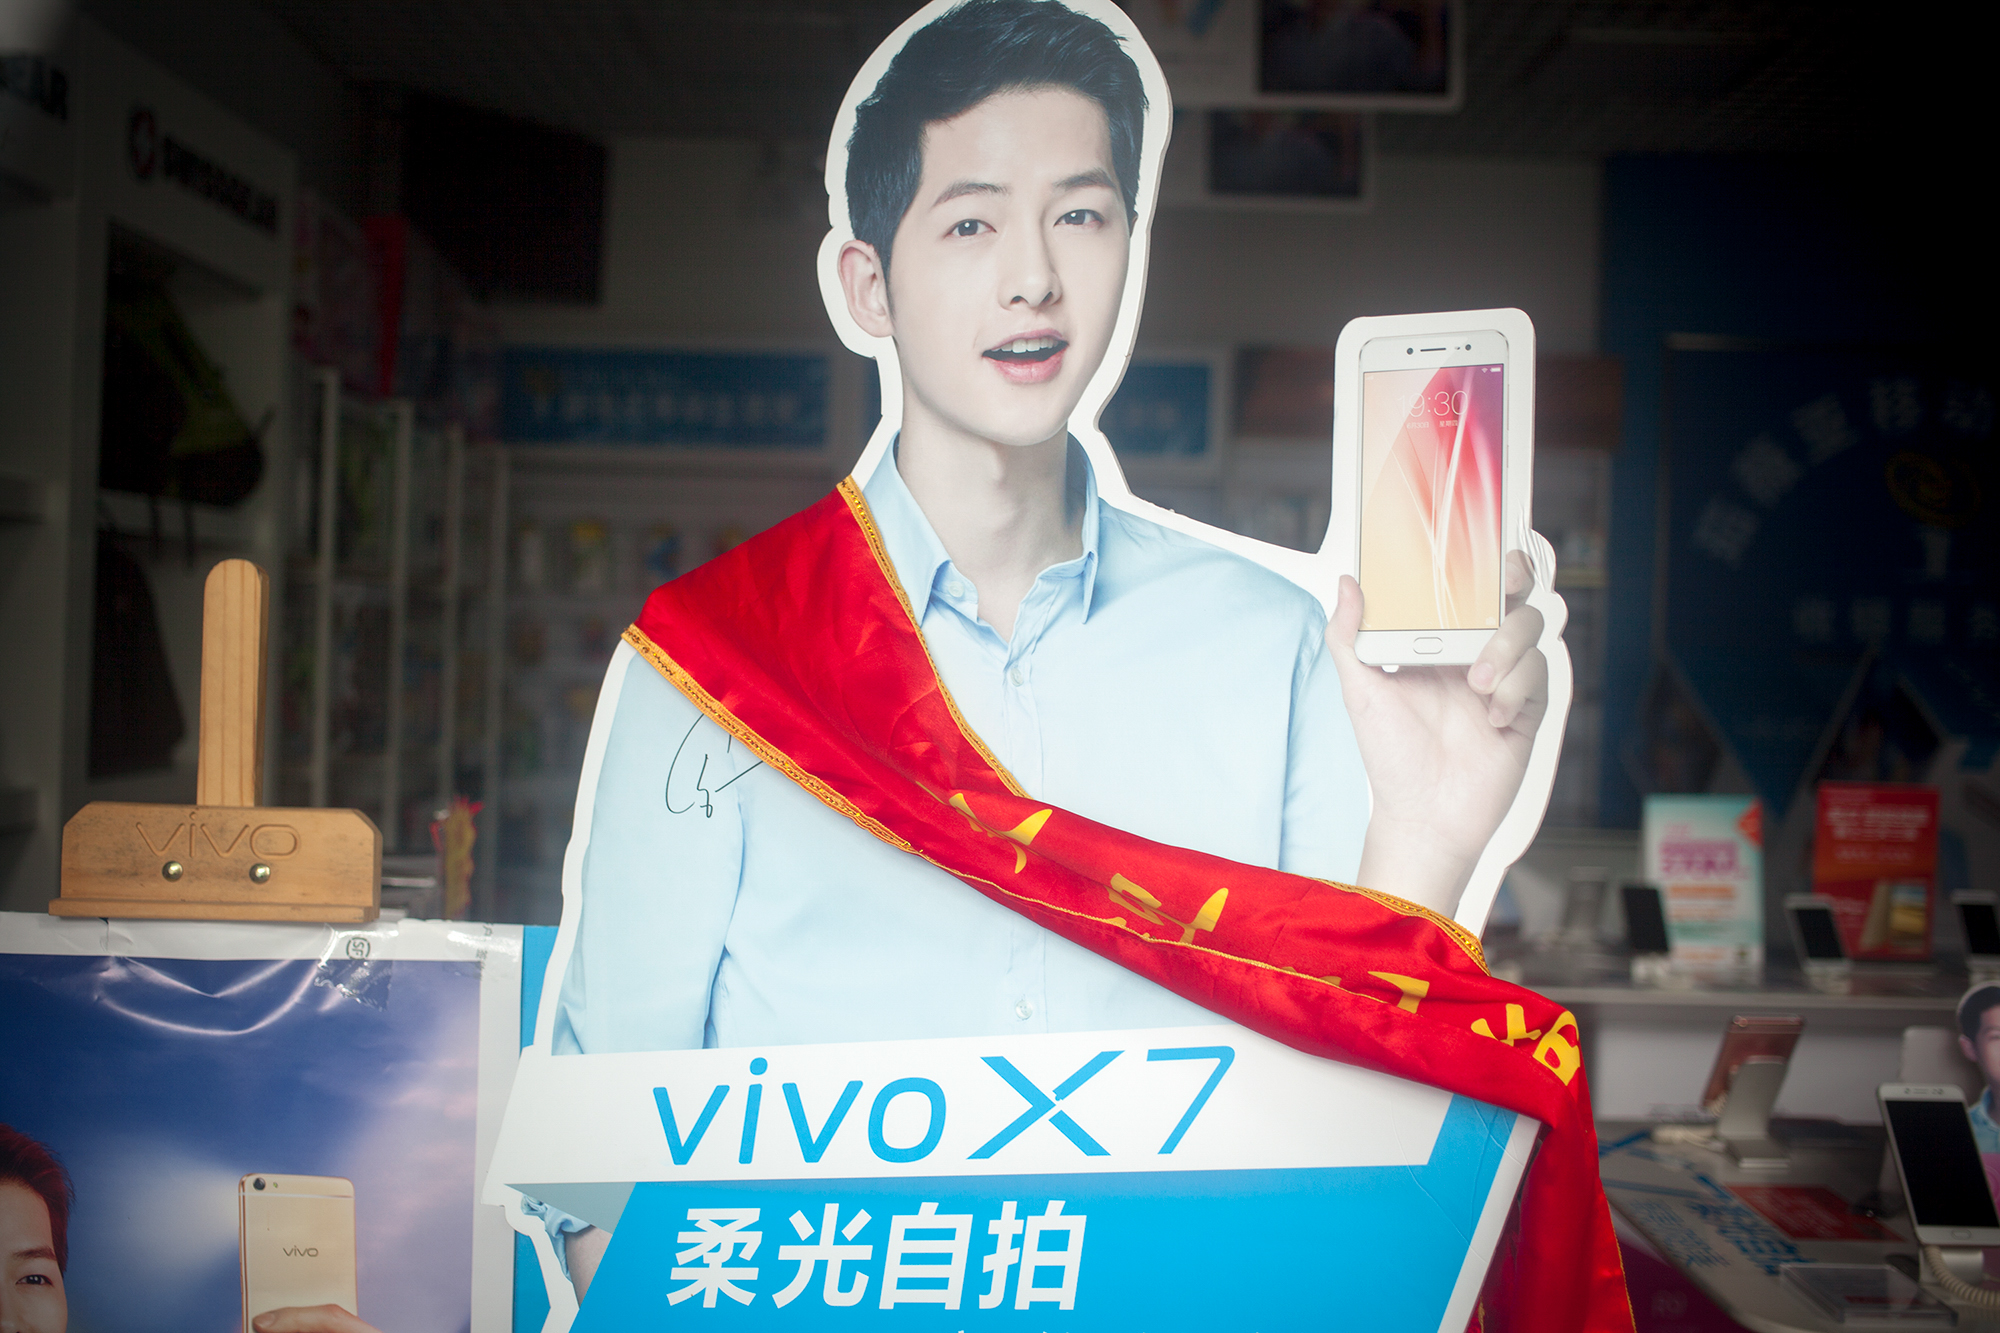 A cellphone advertisement at a shop inside a Foxconn complex, Shenzhen, China, 2016.